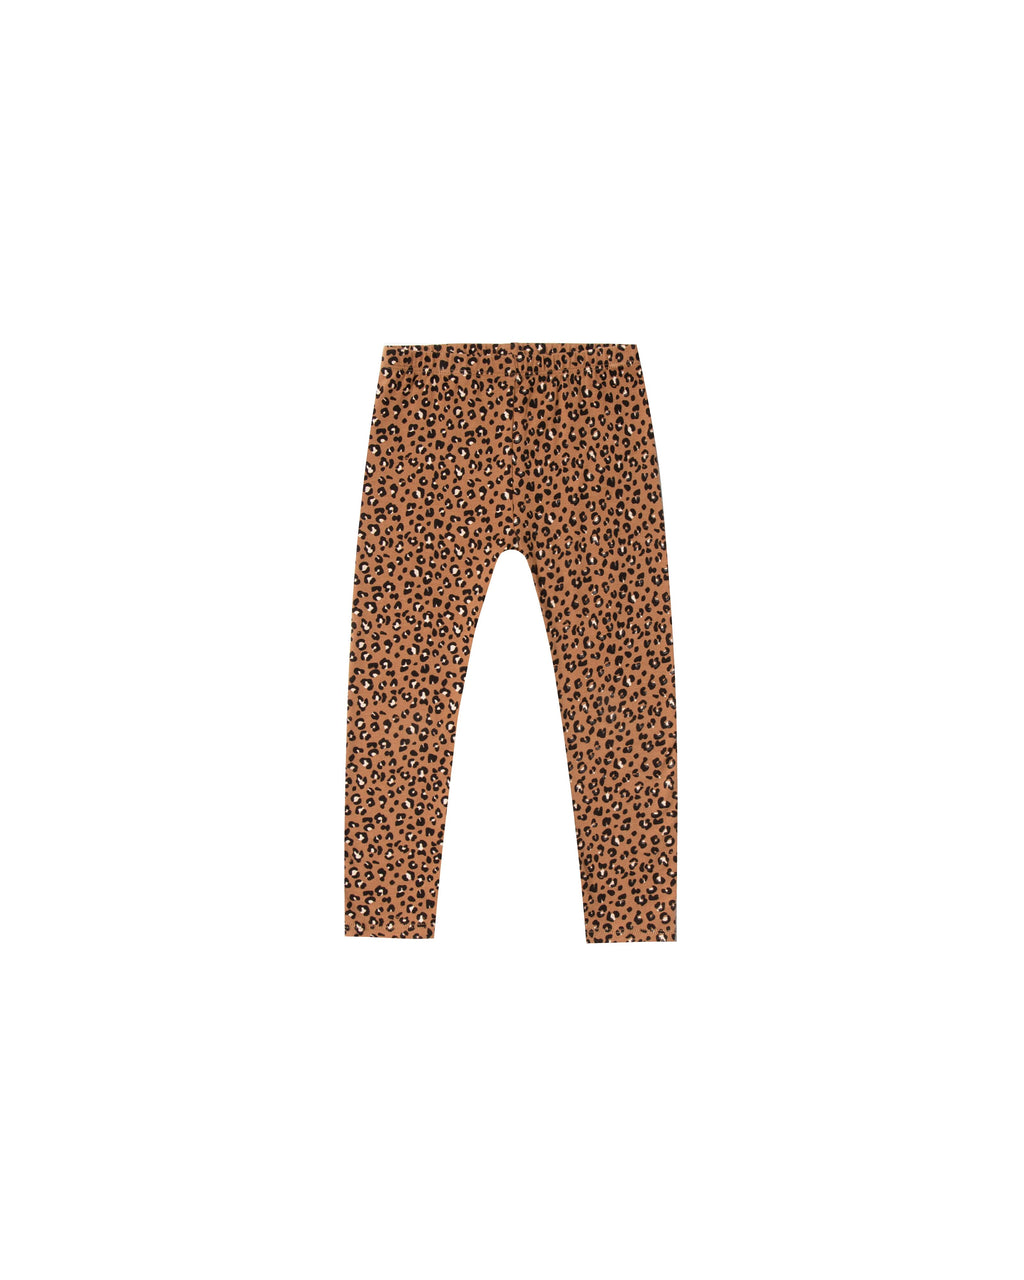 Rylee + Cru - Hometown Collection - Cheetah Leggings